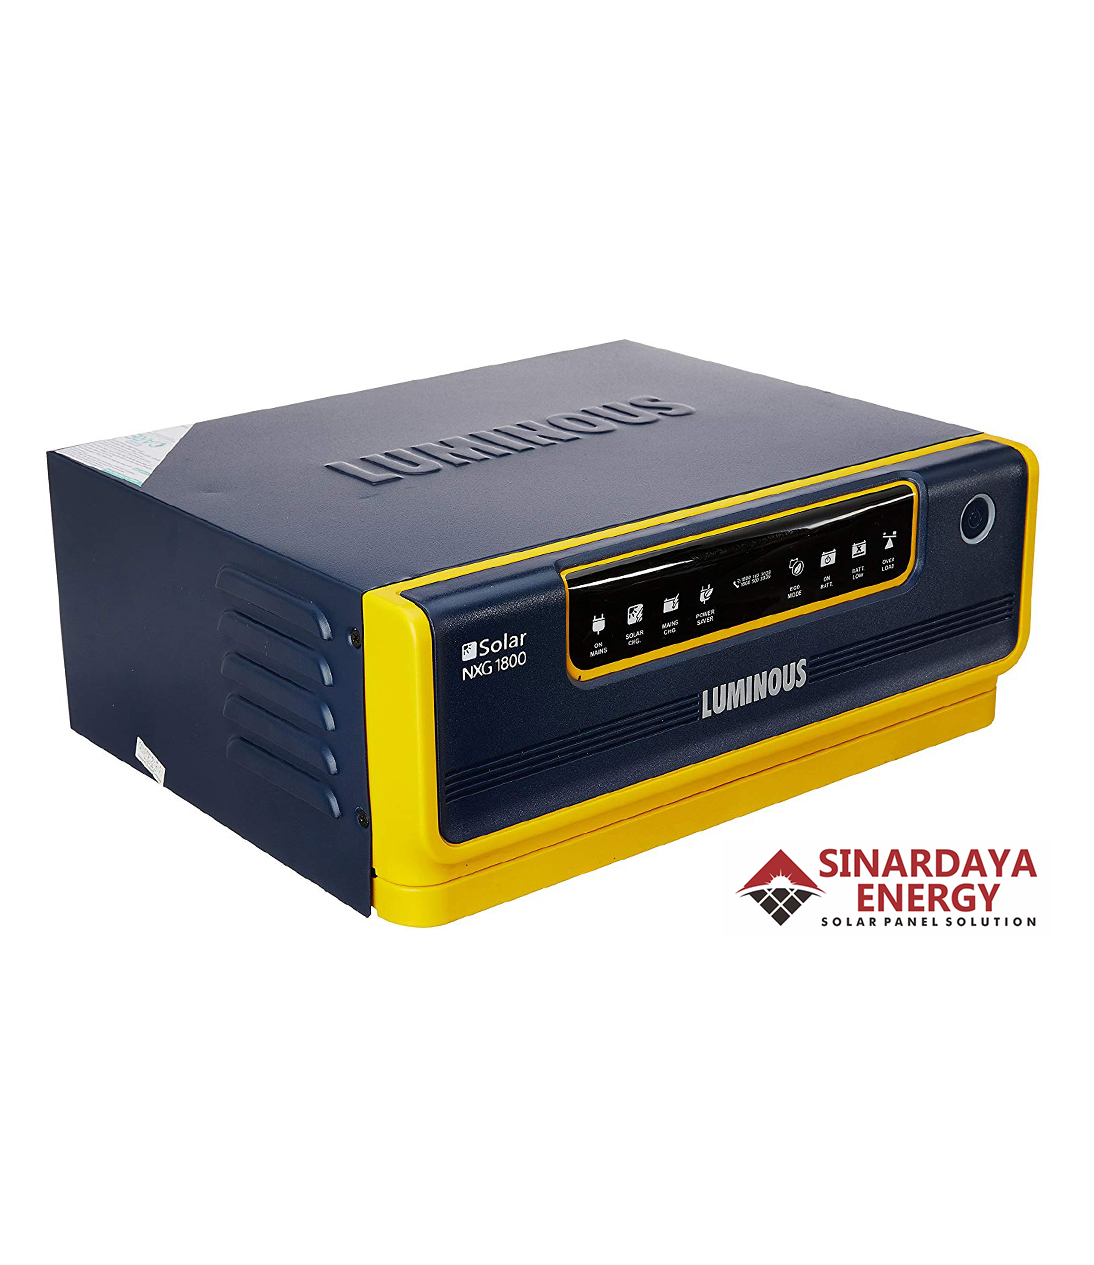 JUAL Inverter Luminous Solar Hybrid | SOLAR PANEL SOLUTION